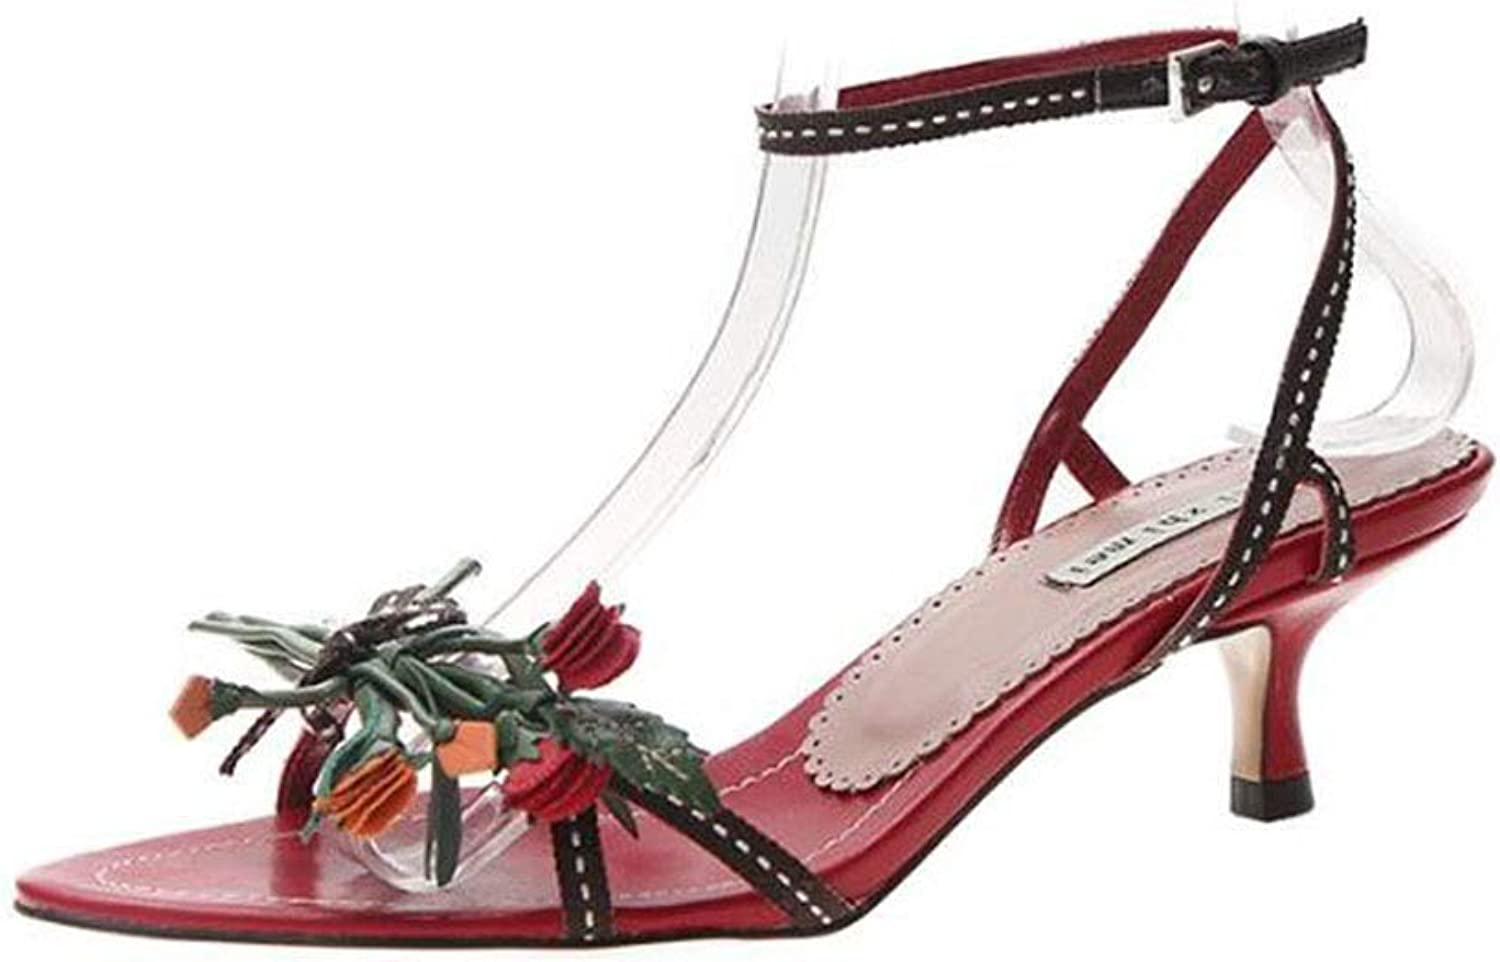 Summer Buckle High Heel Sandals Cherry Red Fresh Flowers Stiletto shoes Simple Sandals (color   Red, Size   235)